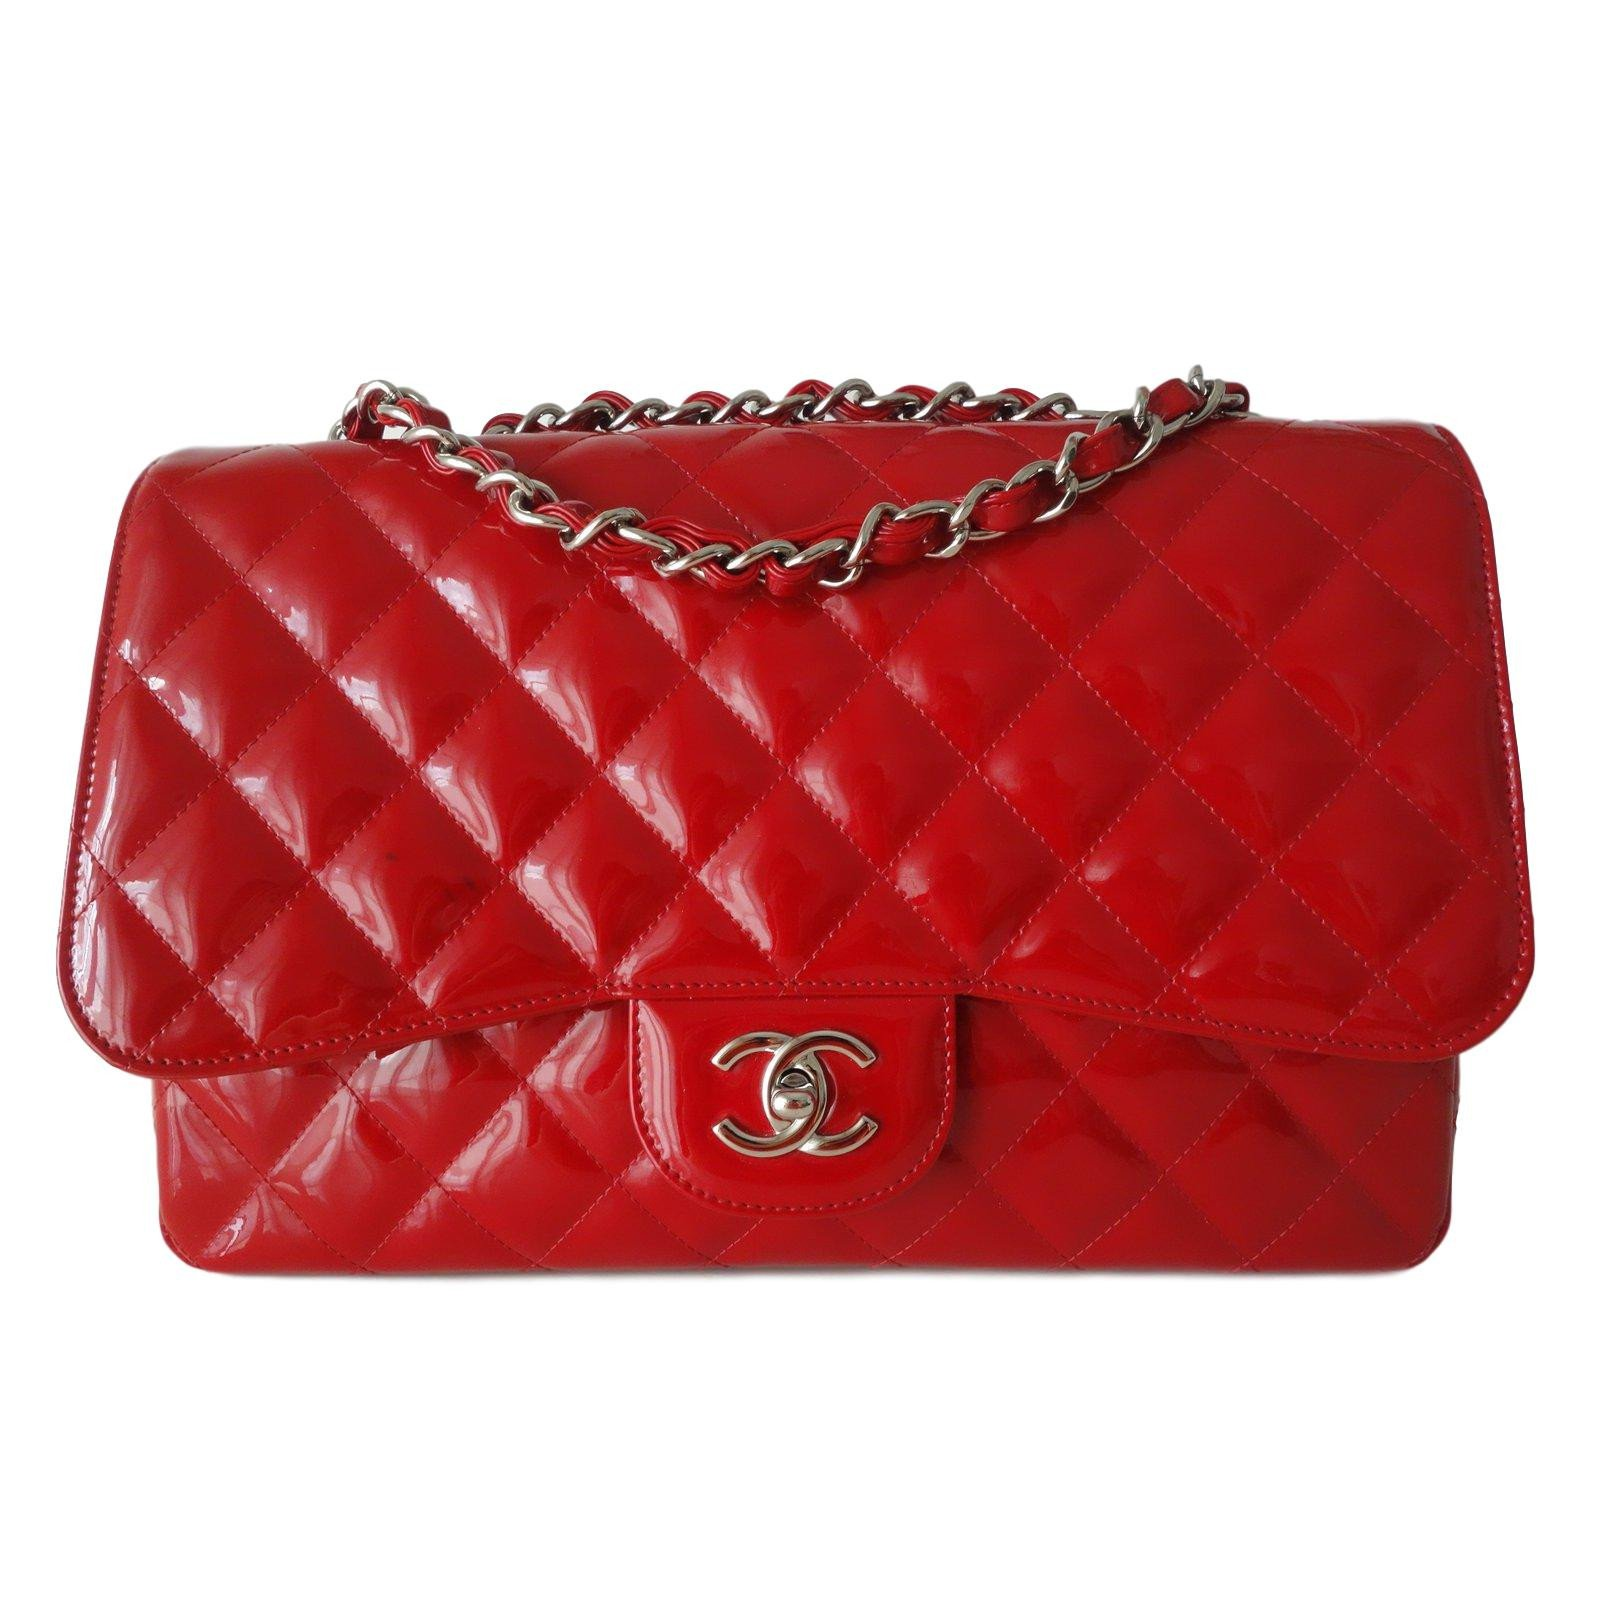 Chanel Red Classic Bag Handbags Patent Leather Ref 87263